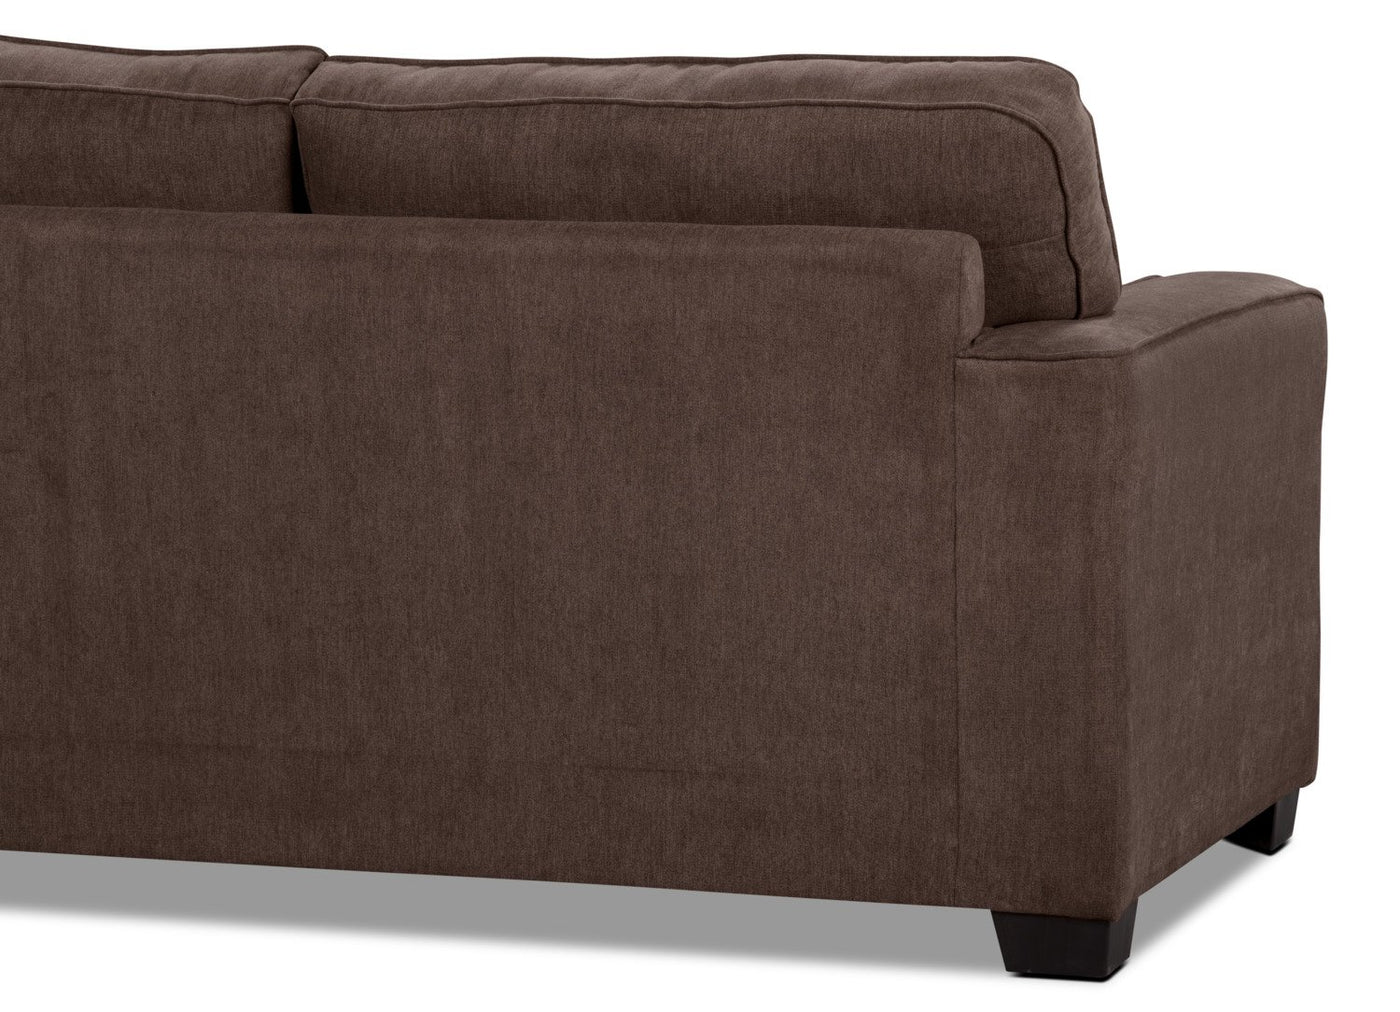 Mocha Sofa 6 Loveseat